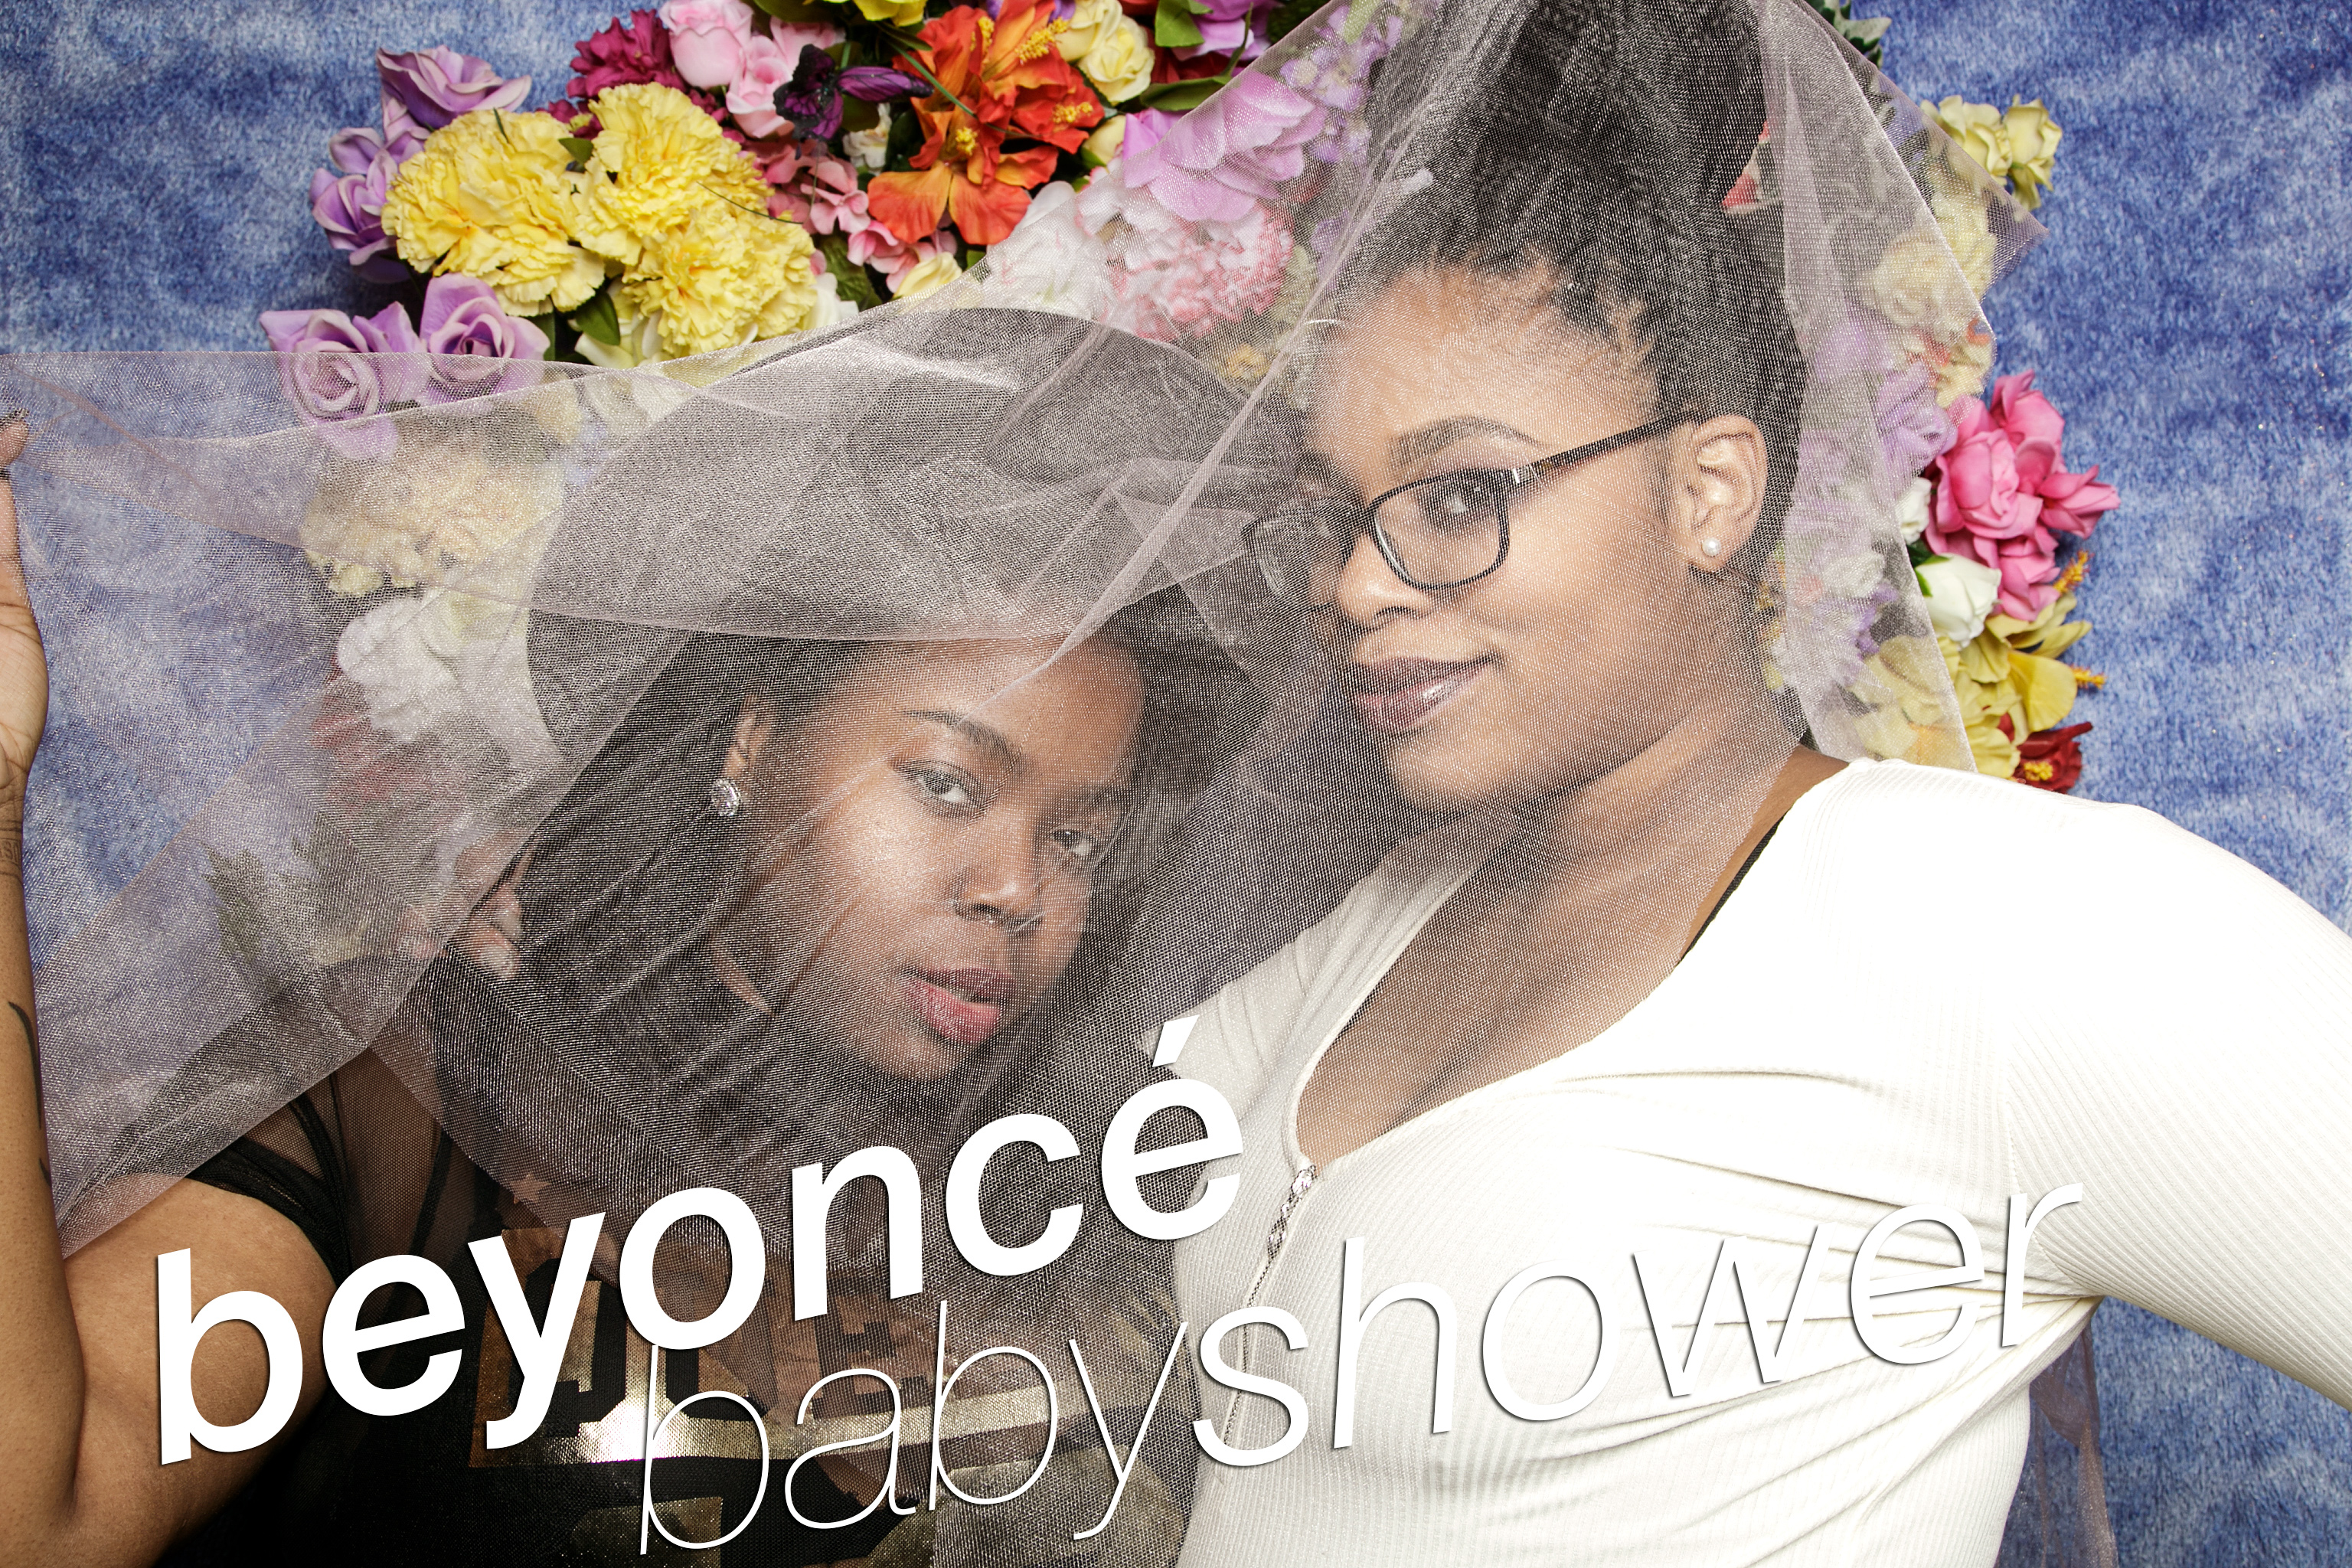 portrait booth photos from a beyonce baby shower, february 2017